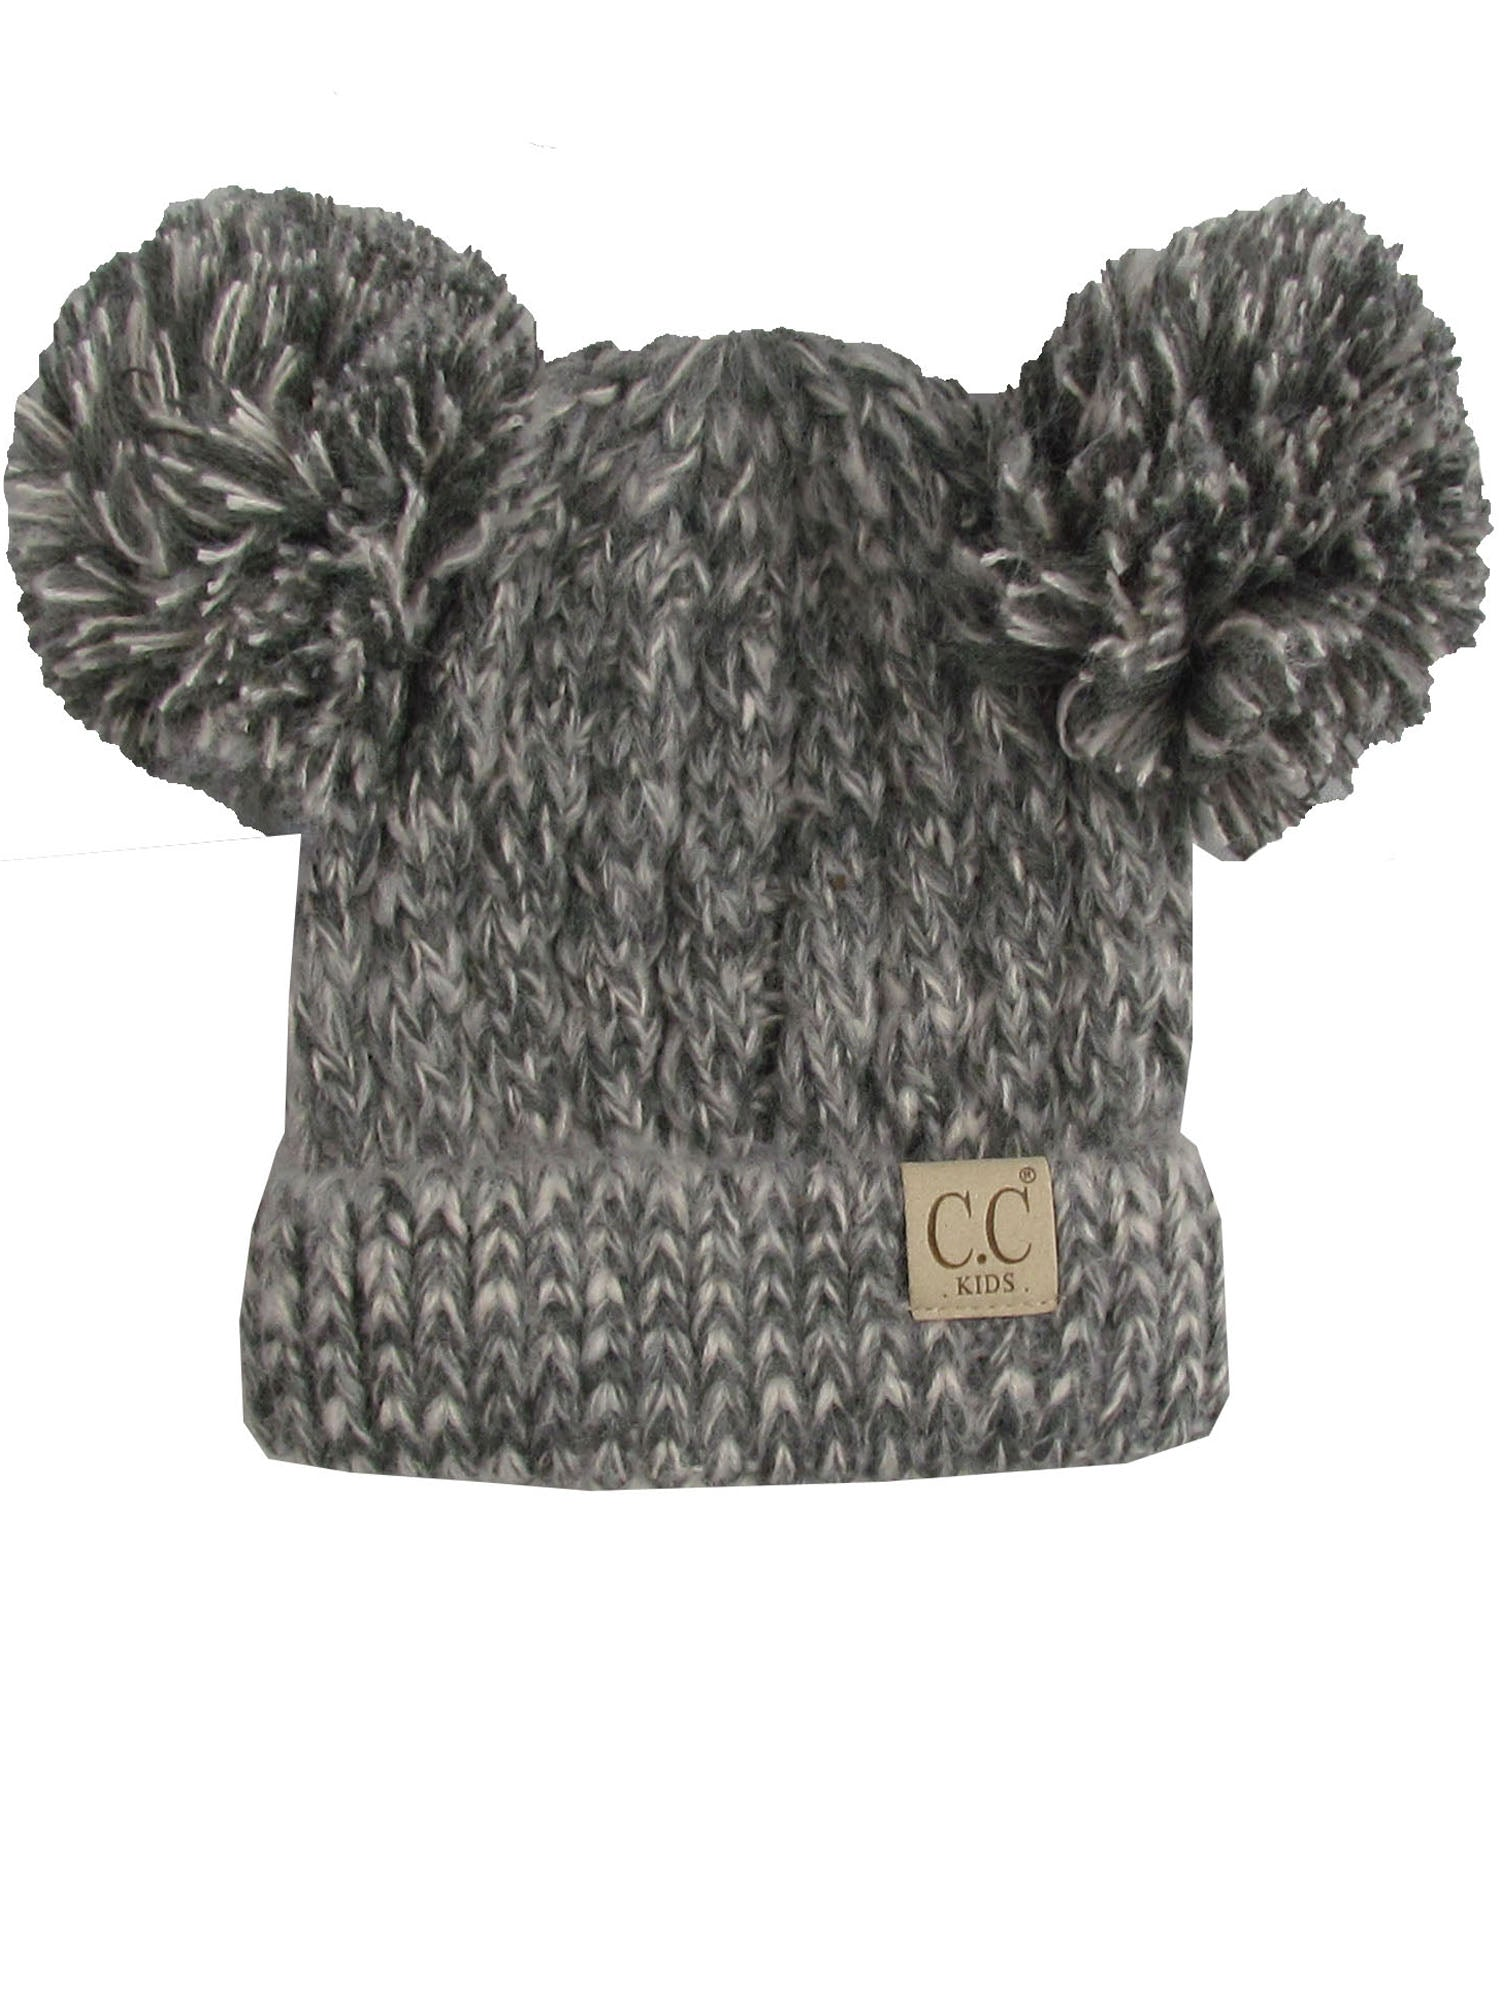 C.C Kid-23 Dark Grey Youth Beanie